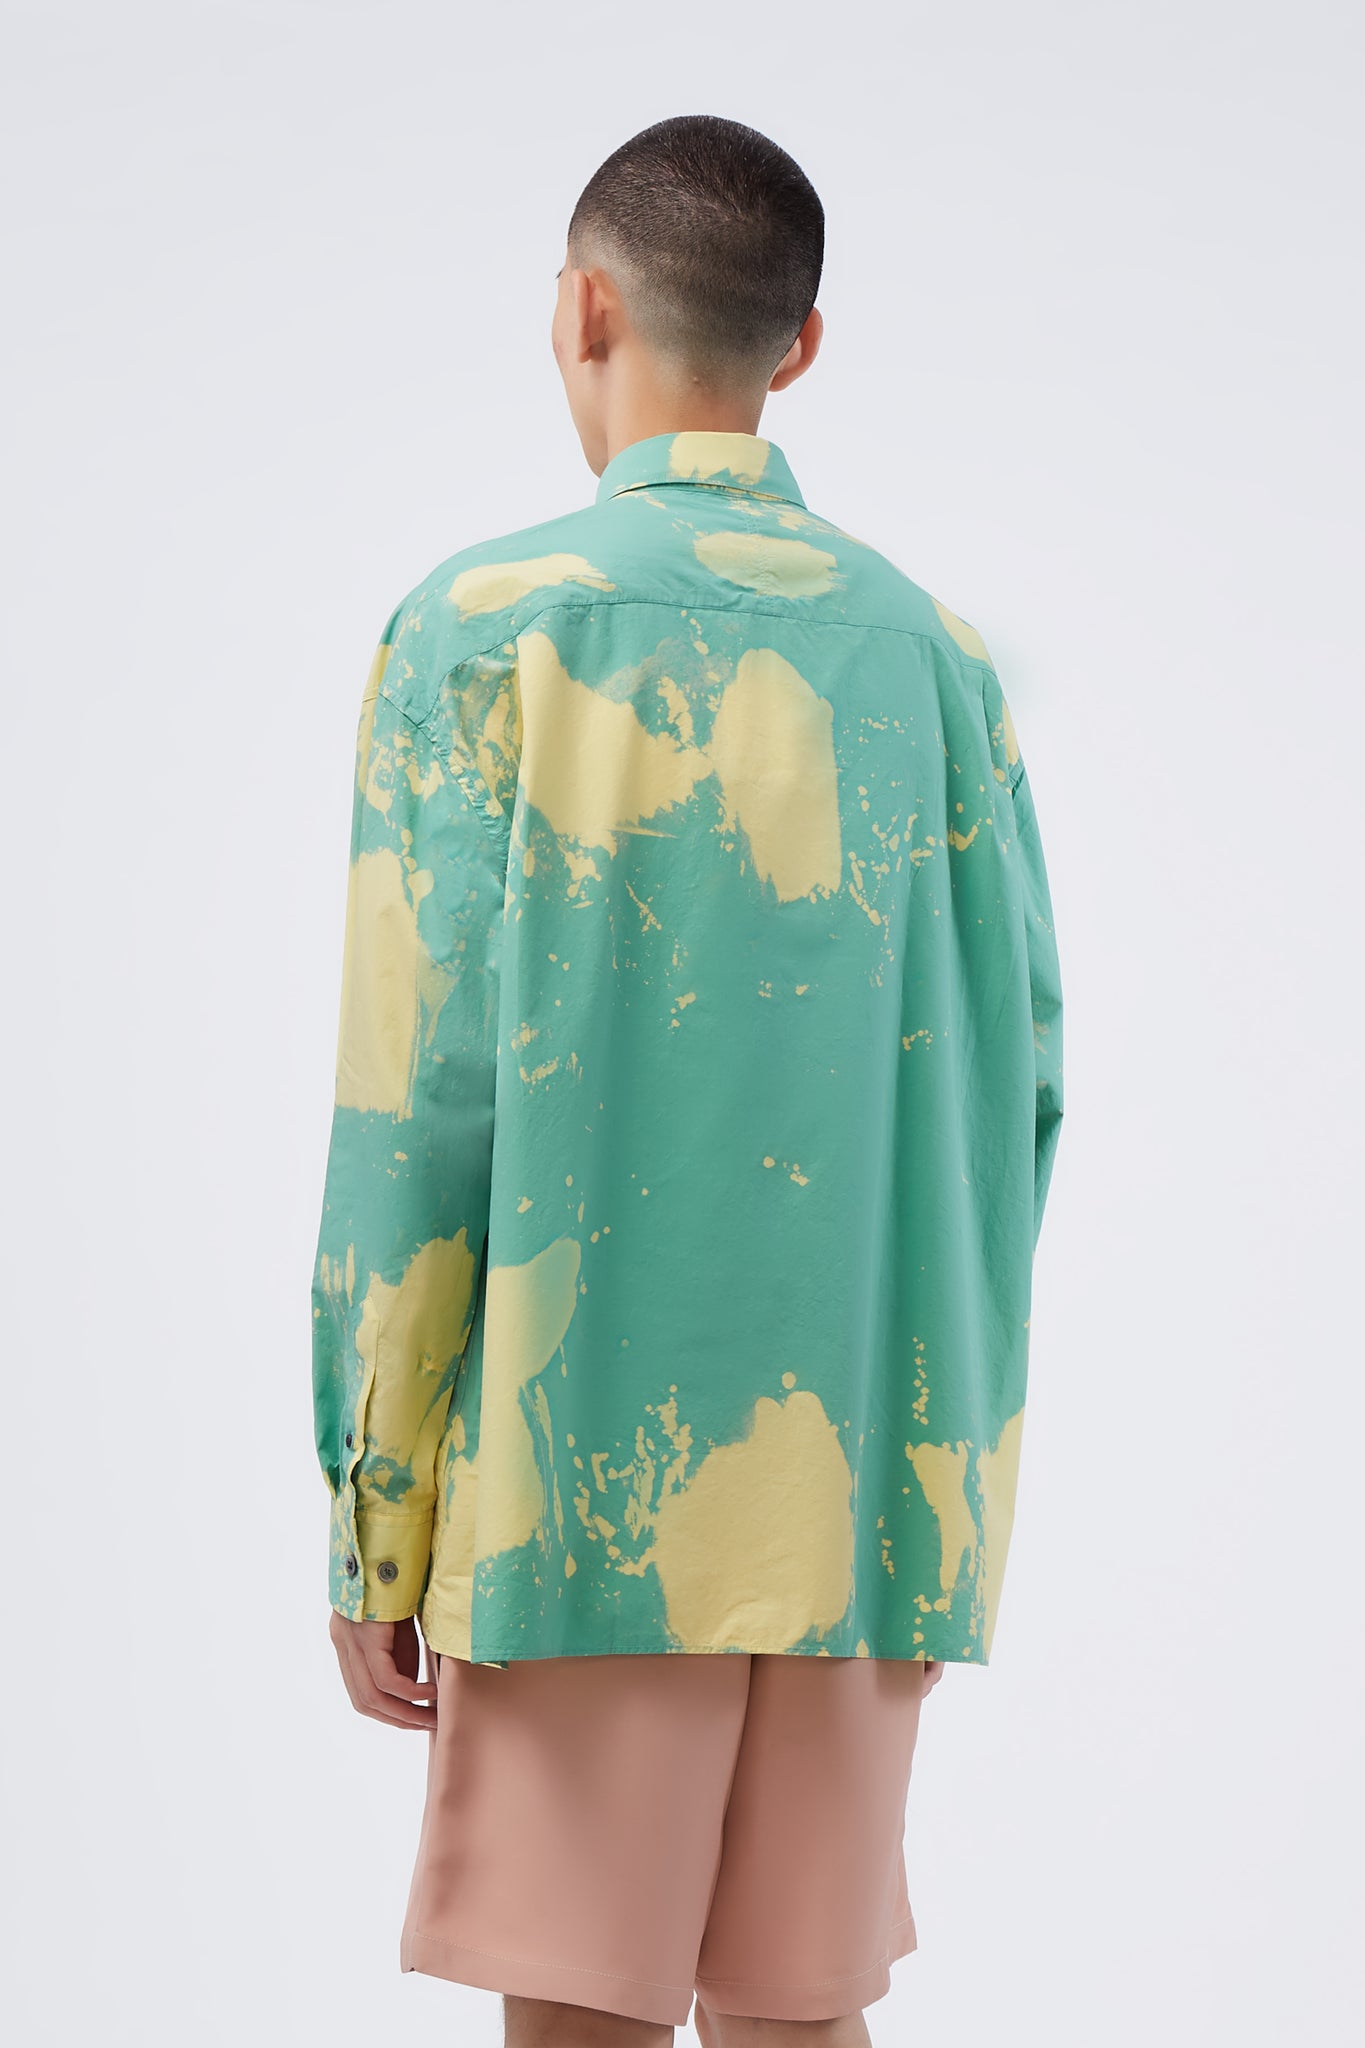 Illusion Mint Bleached Shirt